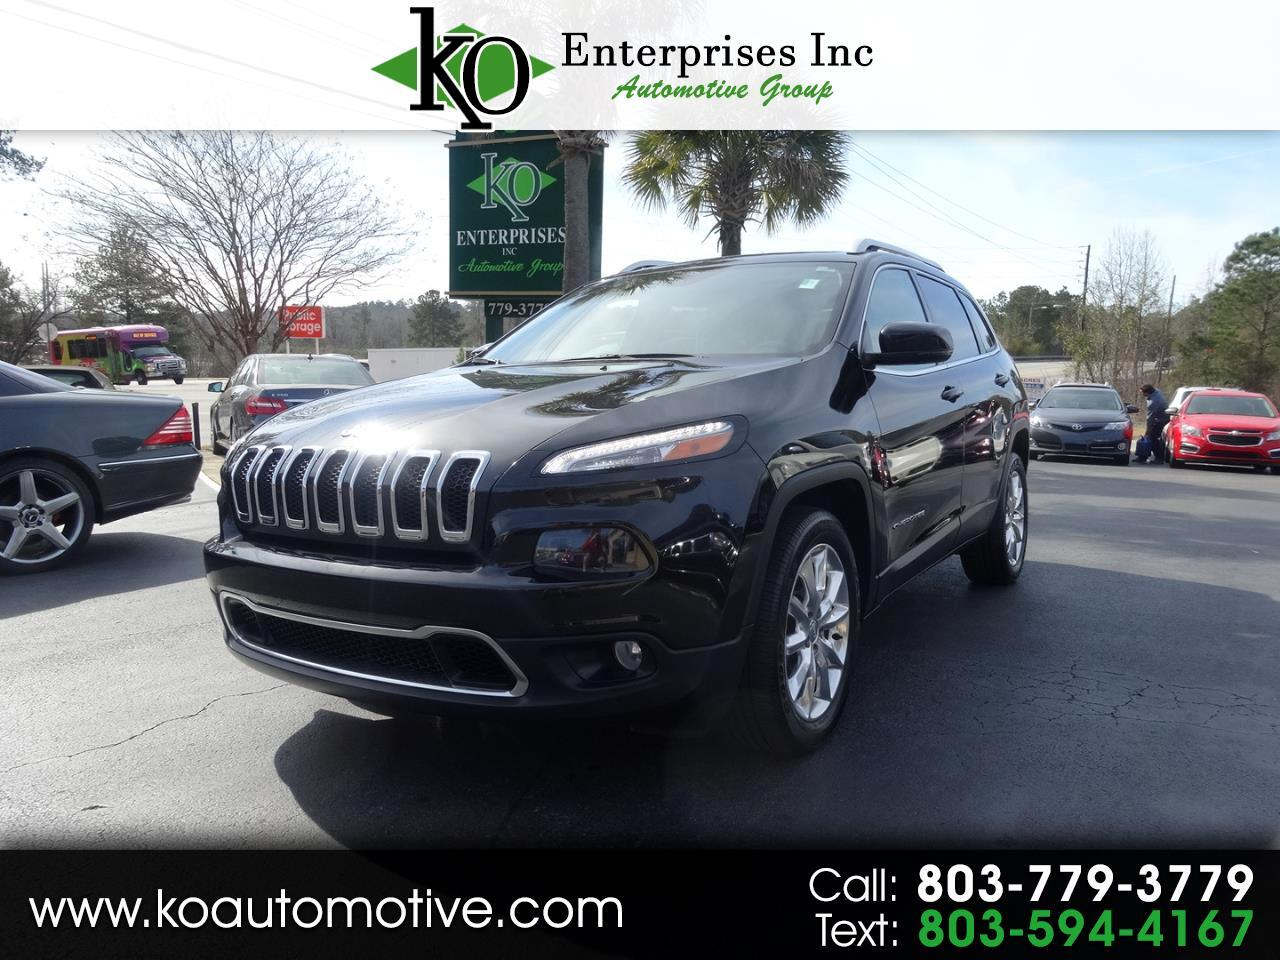 2016 Jeep Cherokee FWD 4dr Limited